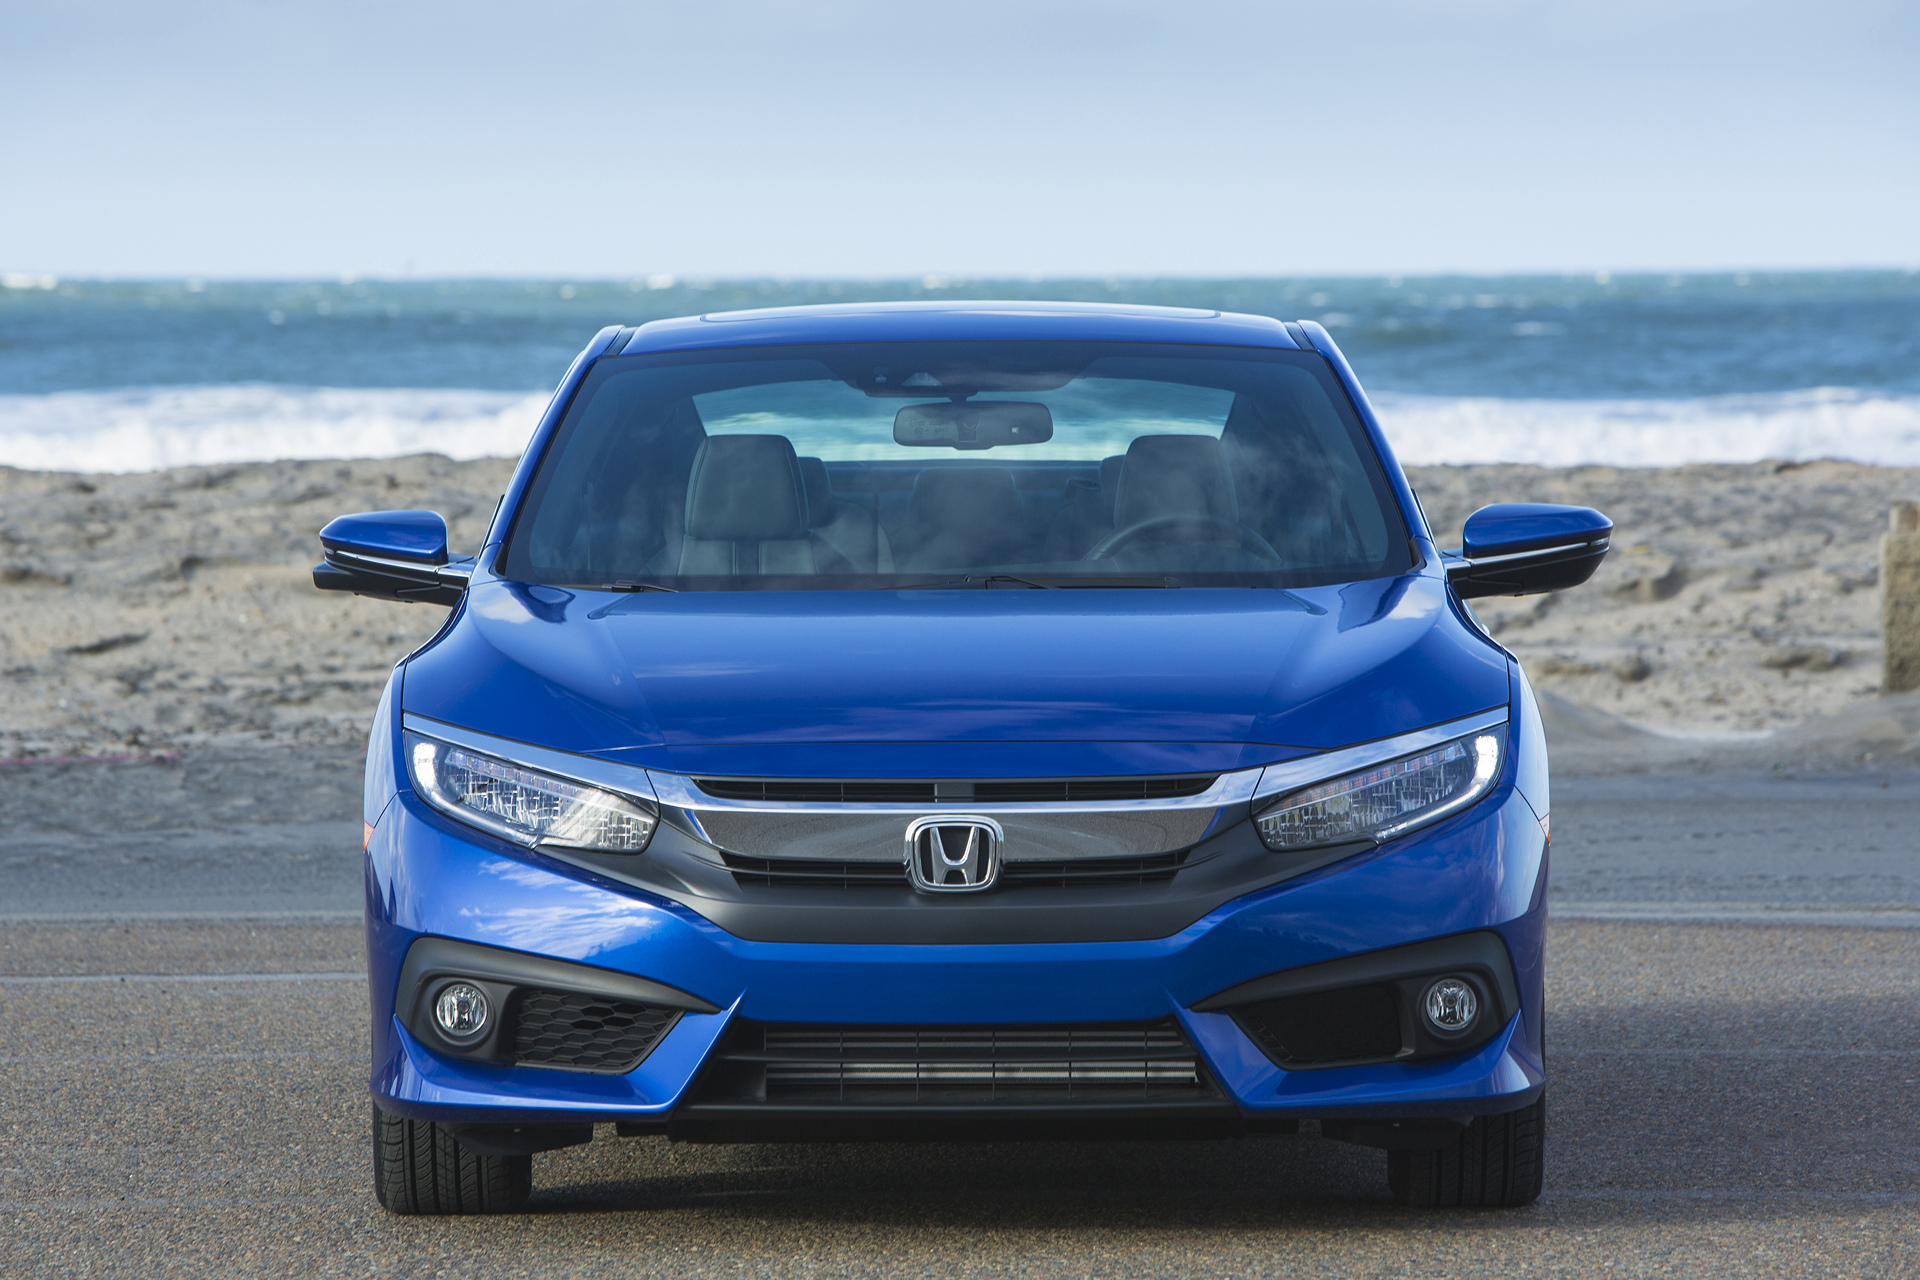 2017 civic lineup turbocharged with extended availability of manual transmission carrrs auto. Black Bedroom Furniture Sets. Home Design Ideas